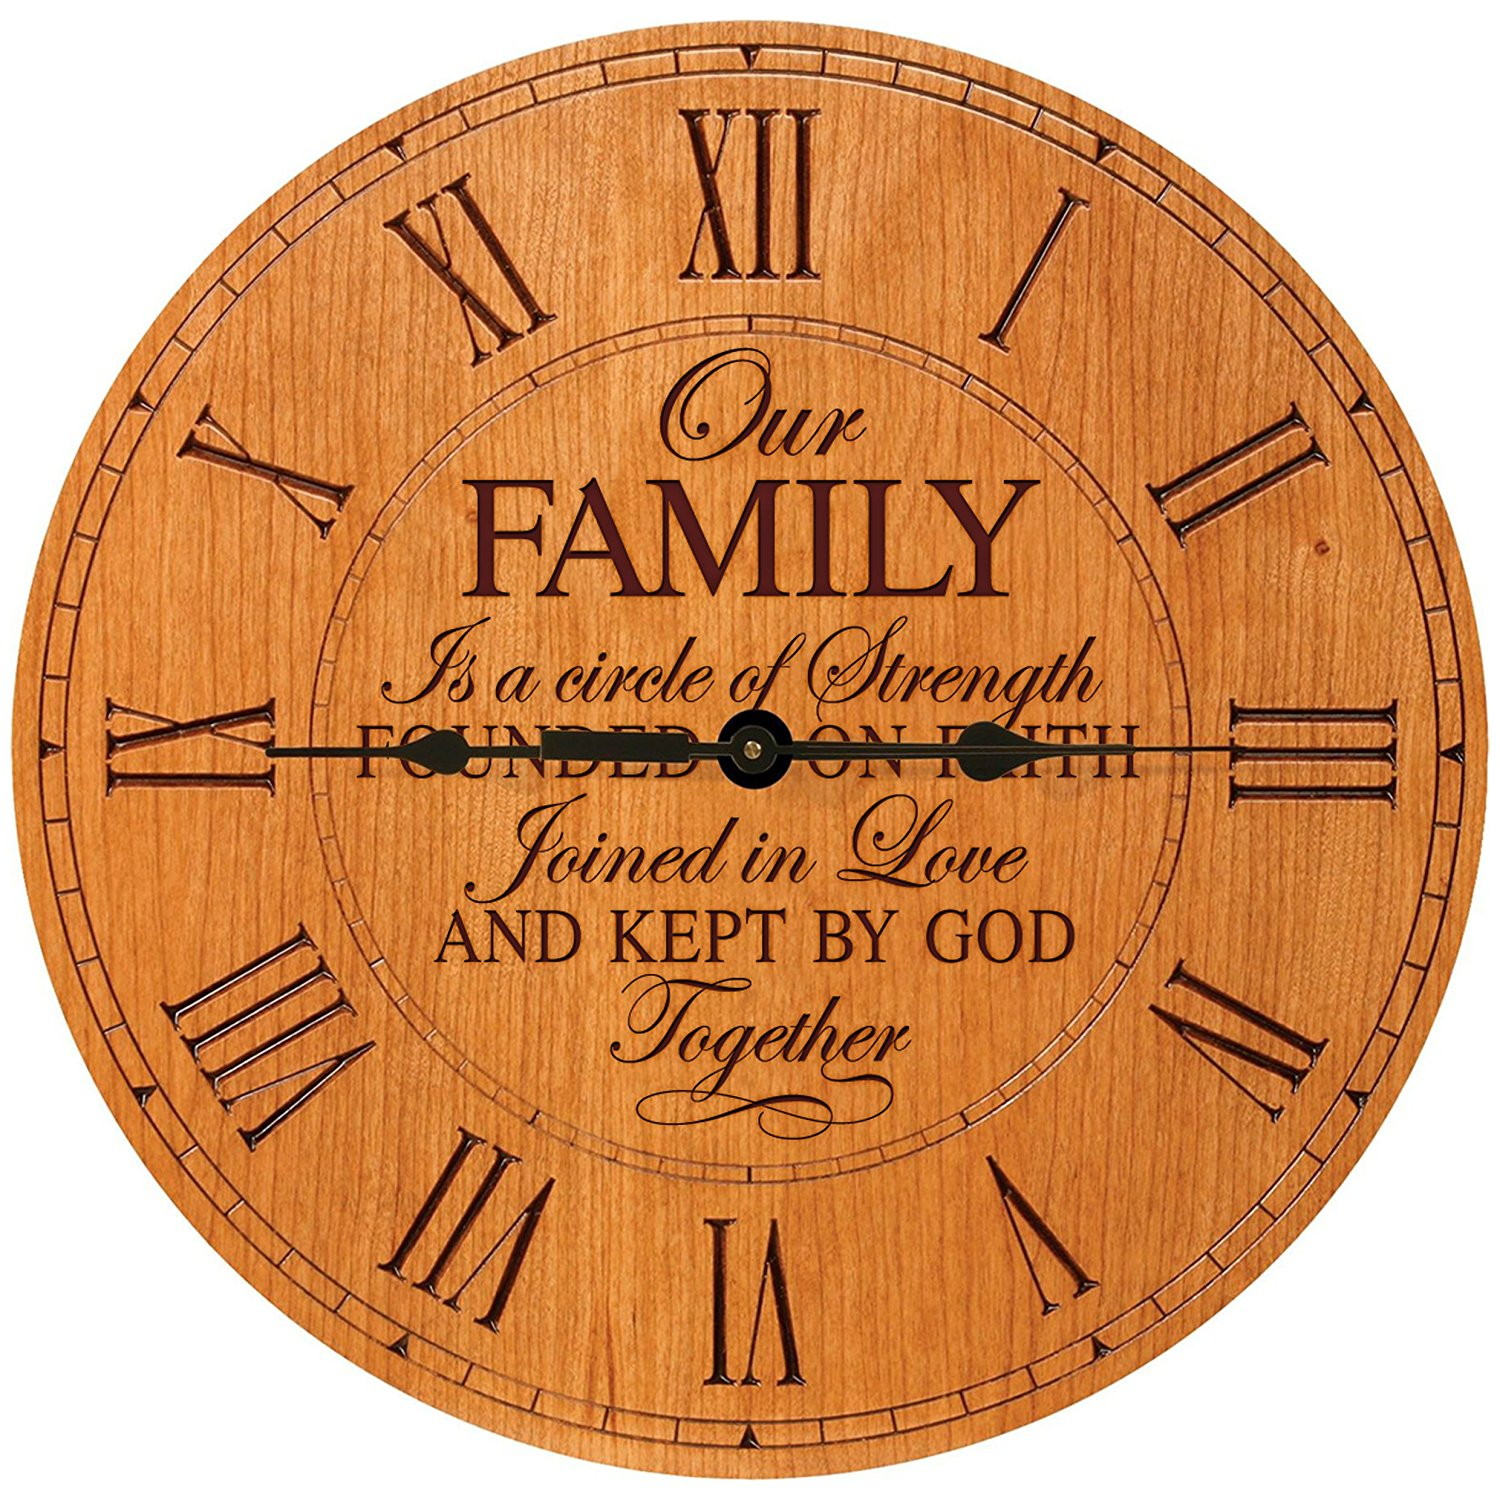 """Wedding Anniversary Gifts for parents Modern Decorative Wall Clocks Housewarming Anniversary Gift ideas for Couple Our Family is a circle of Strength 12""""x12"""" By Dayspring Milestones (Roman Cherry)"""